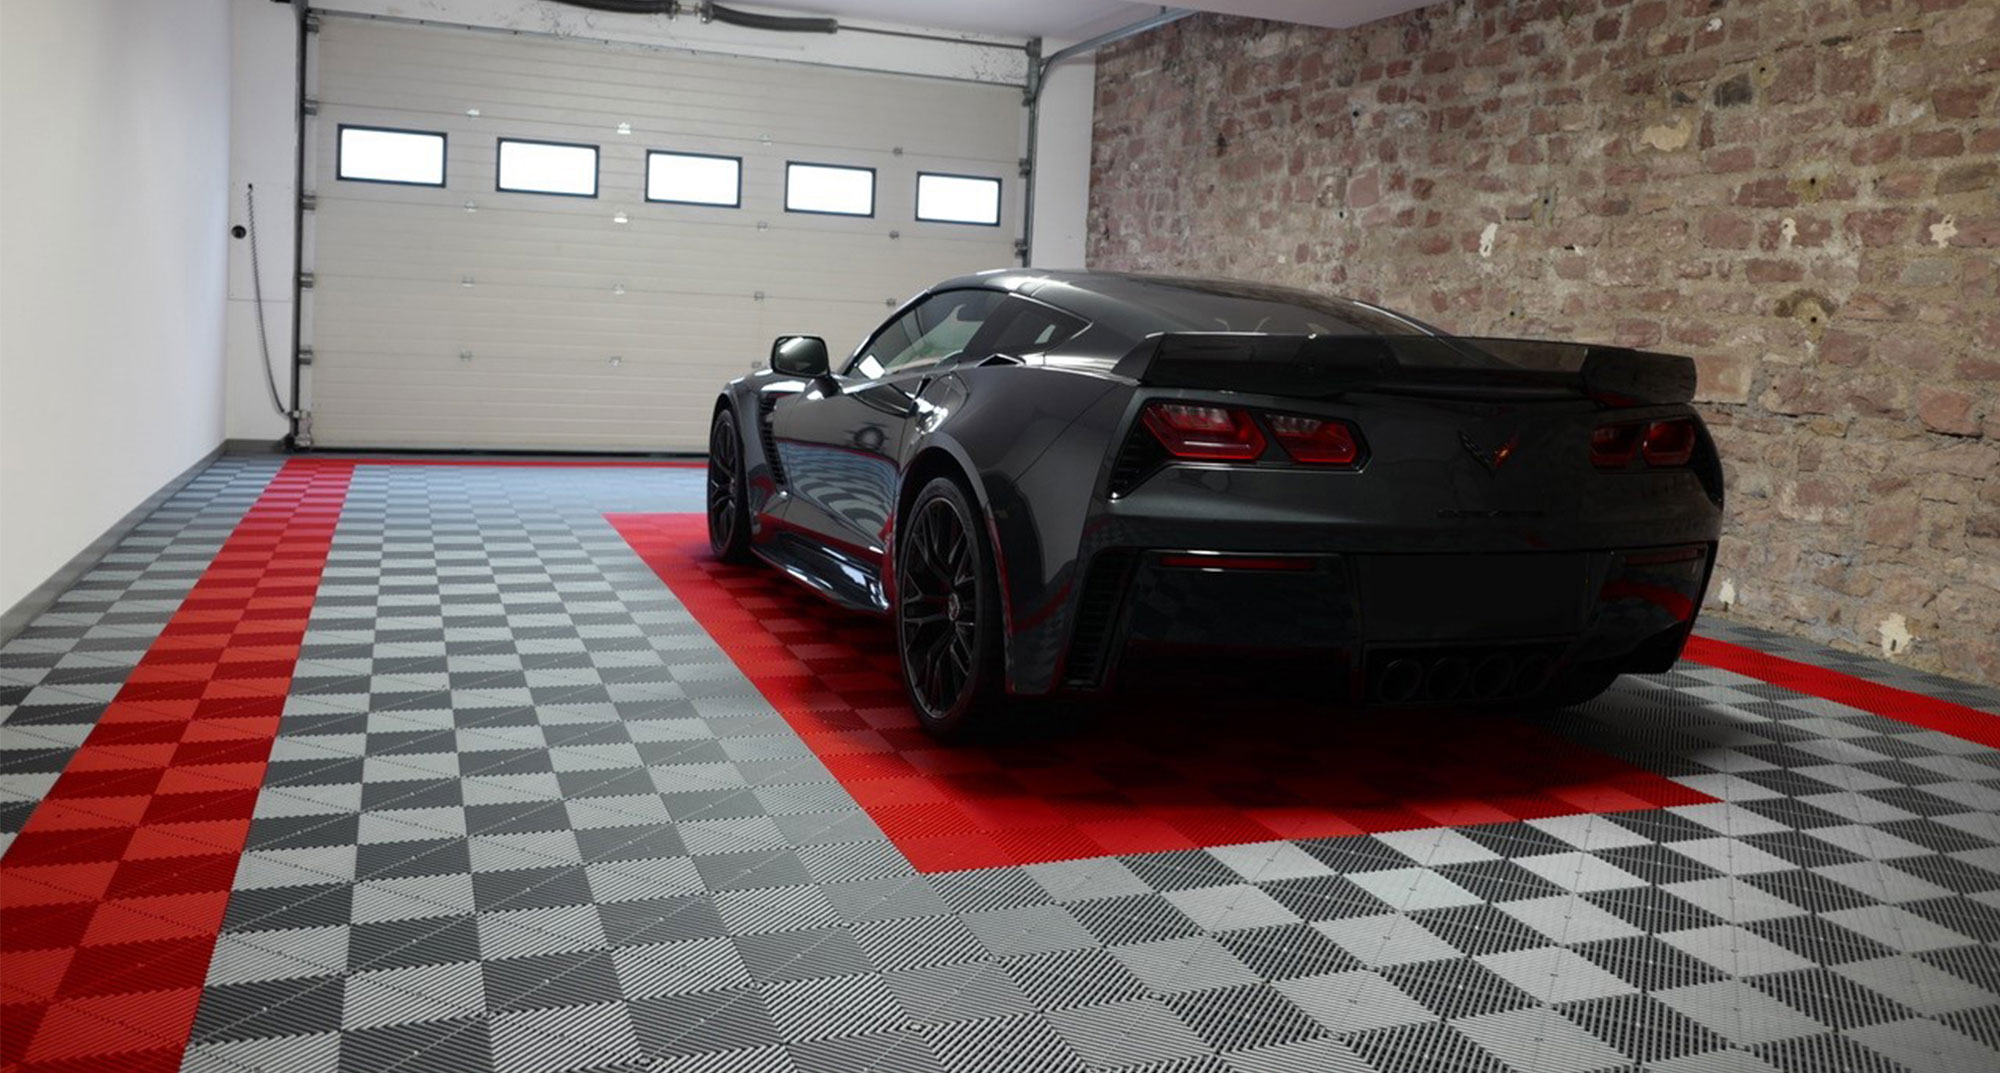 Corvette_AR_sol_Polydal_garage_prive